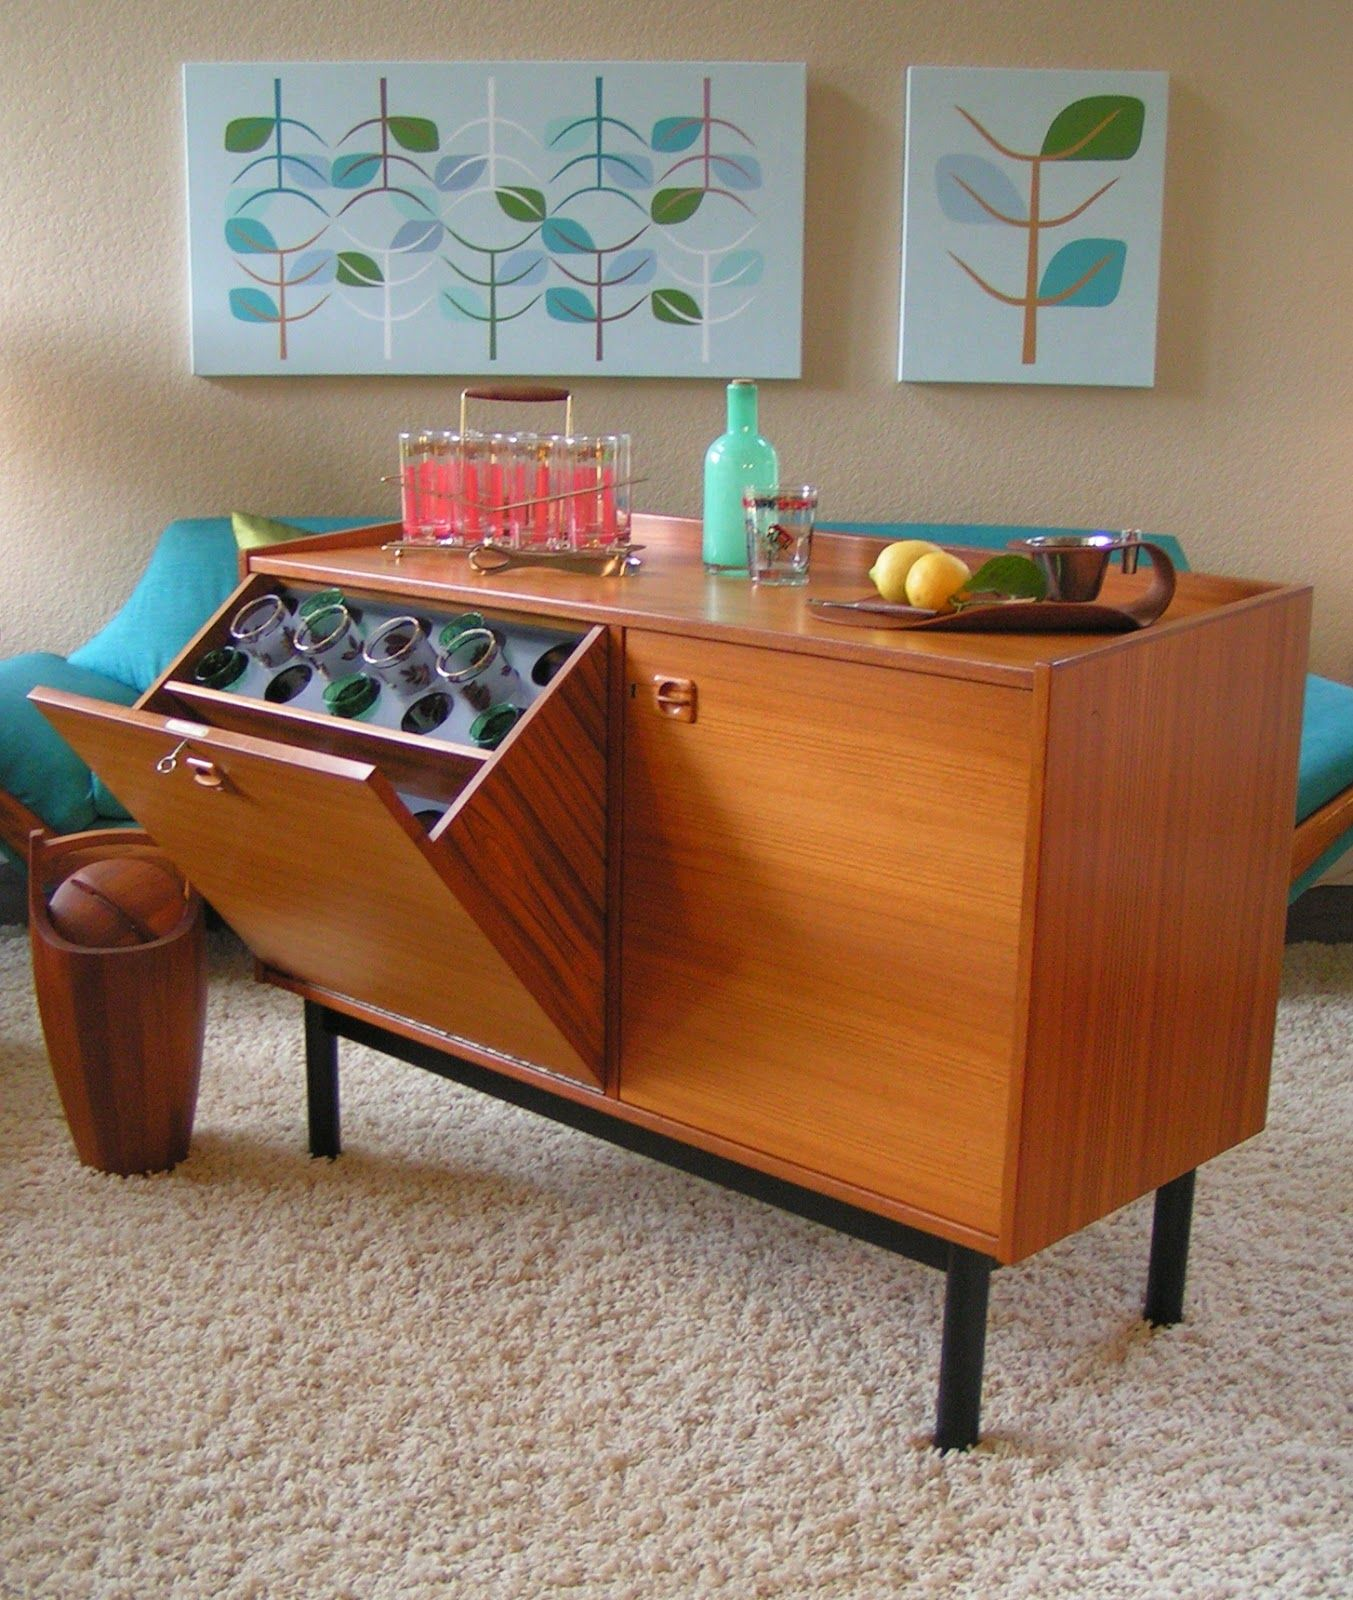 Vintage Bar Cabinets And Retro Stools For Your Home Decor Www Barstoolsfurniture